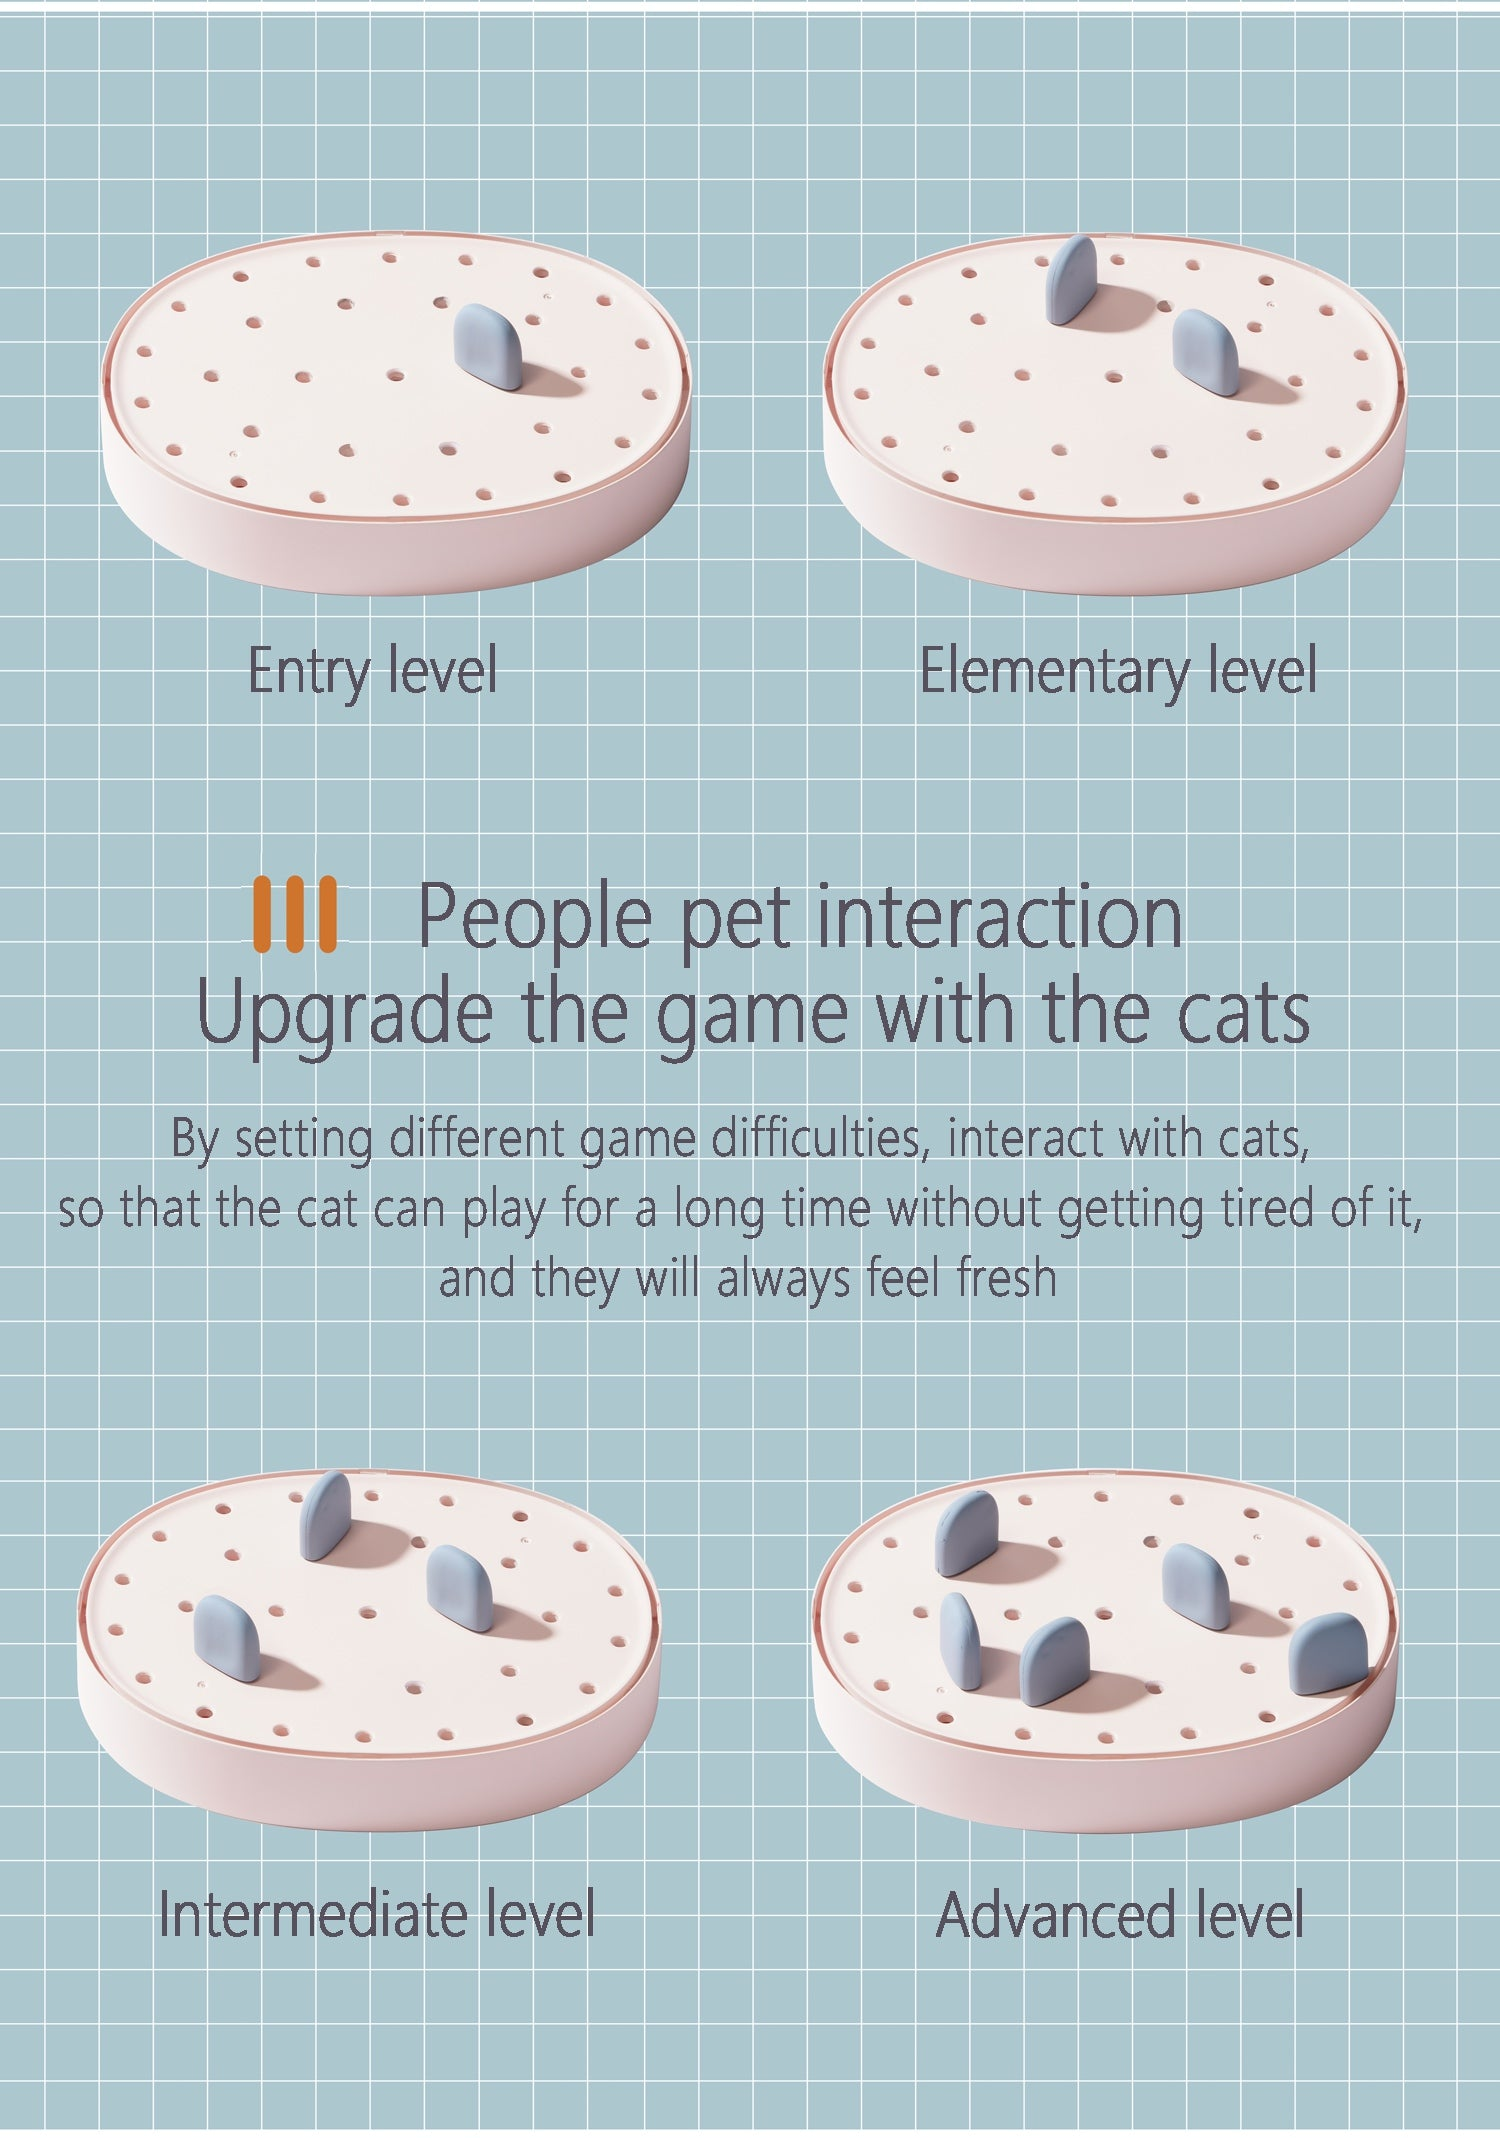 Upgrade the game with cats